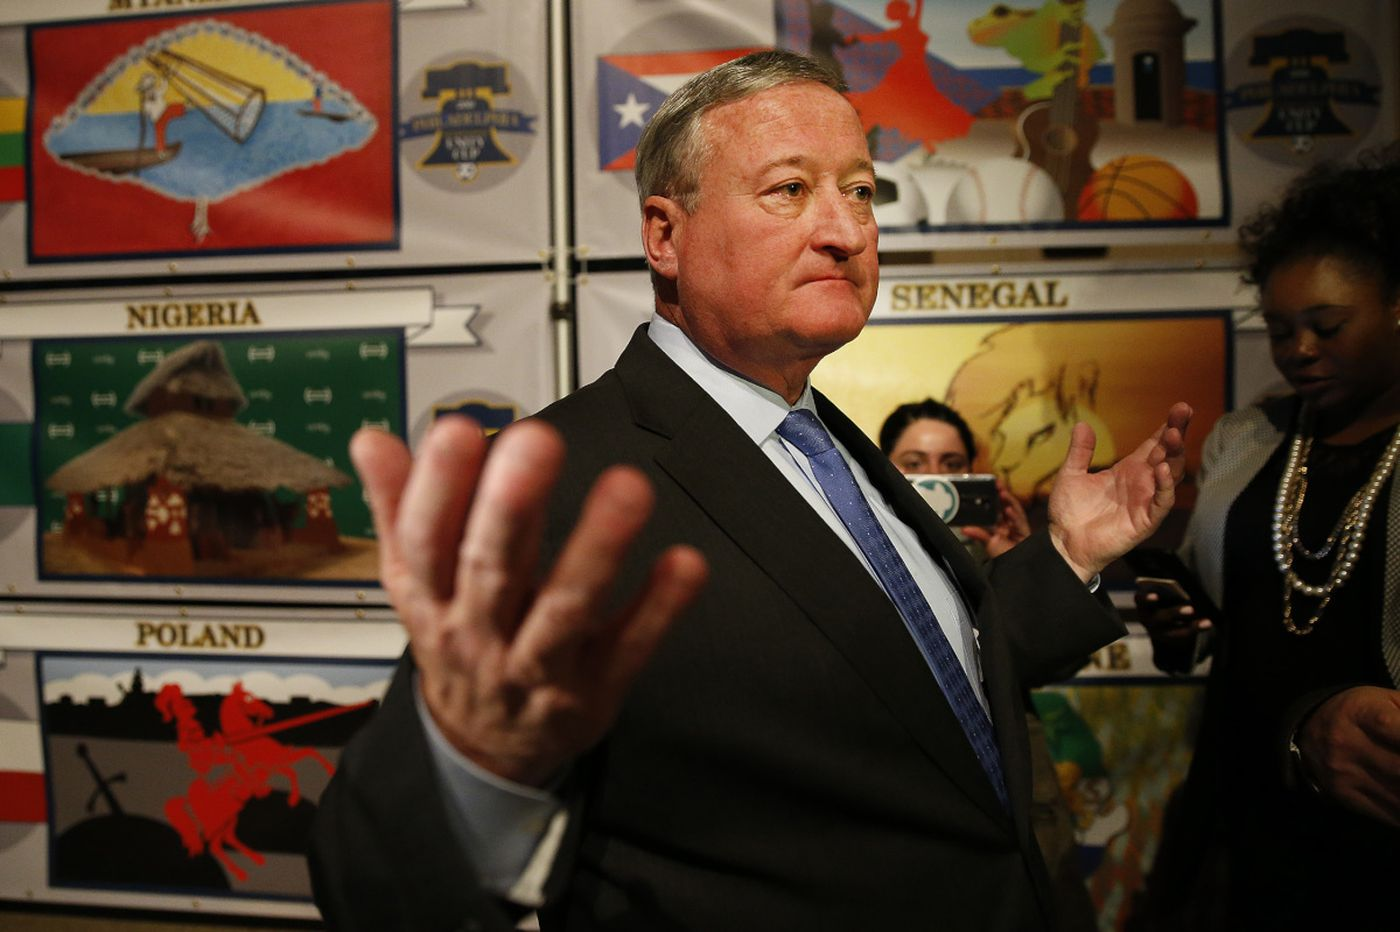 Newall: Under pressure to smile, Mayor Kenney reviews his rookie season